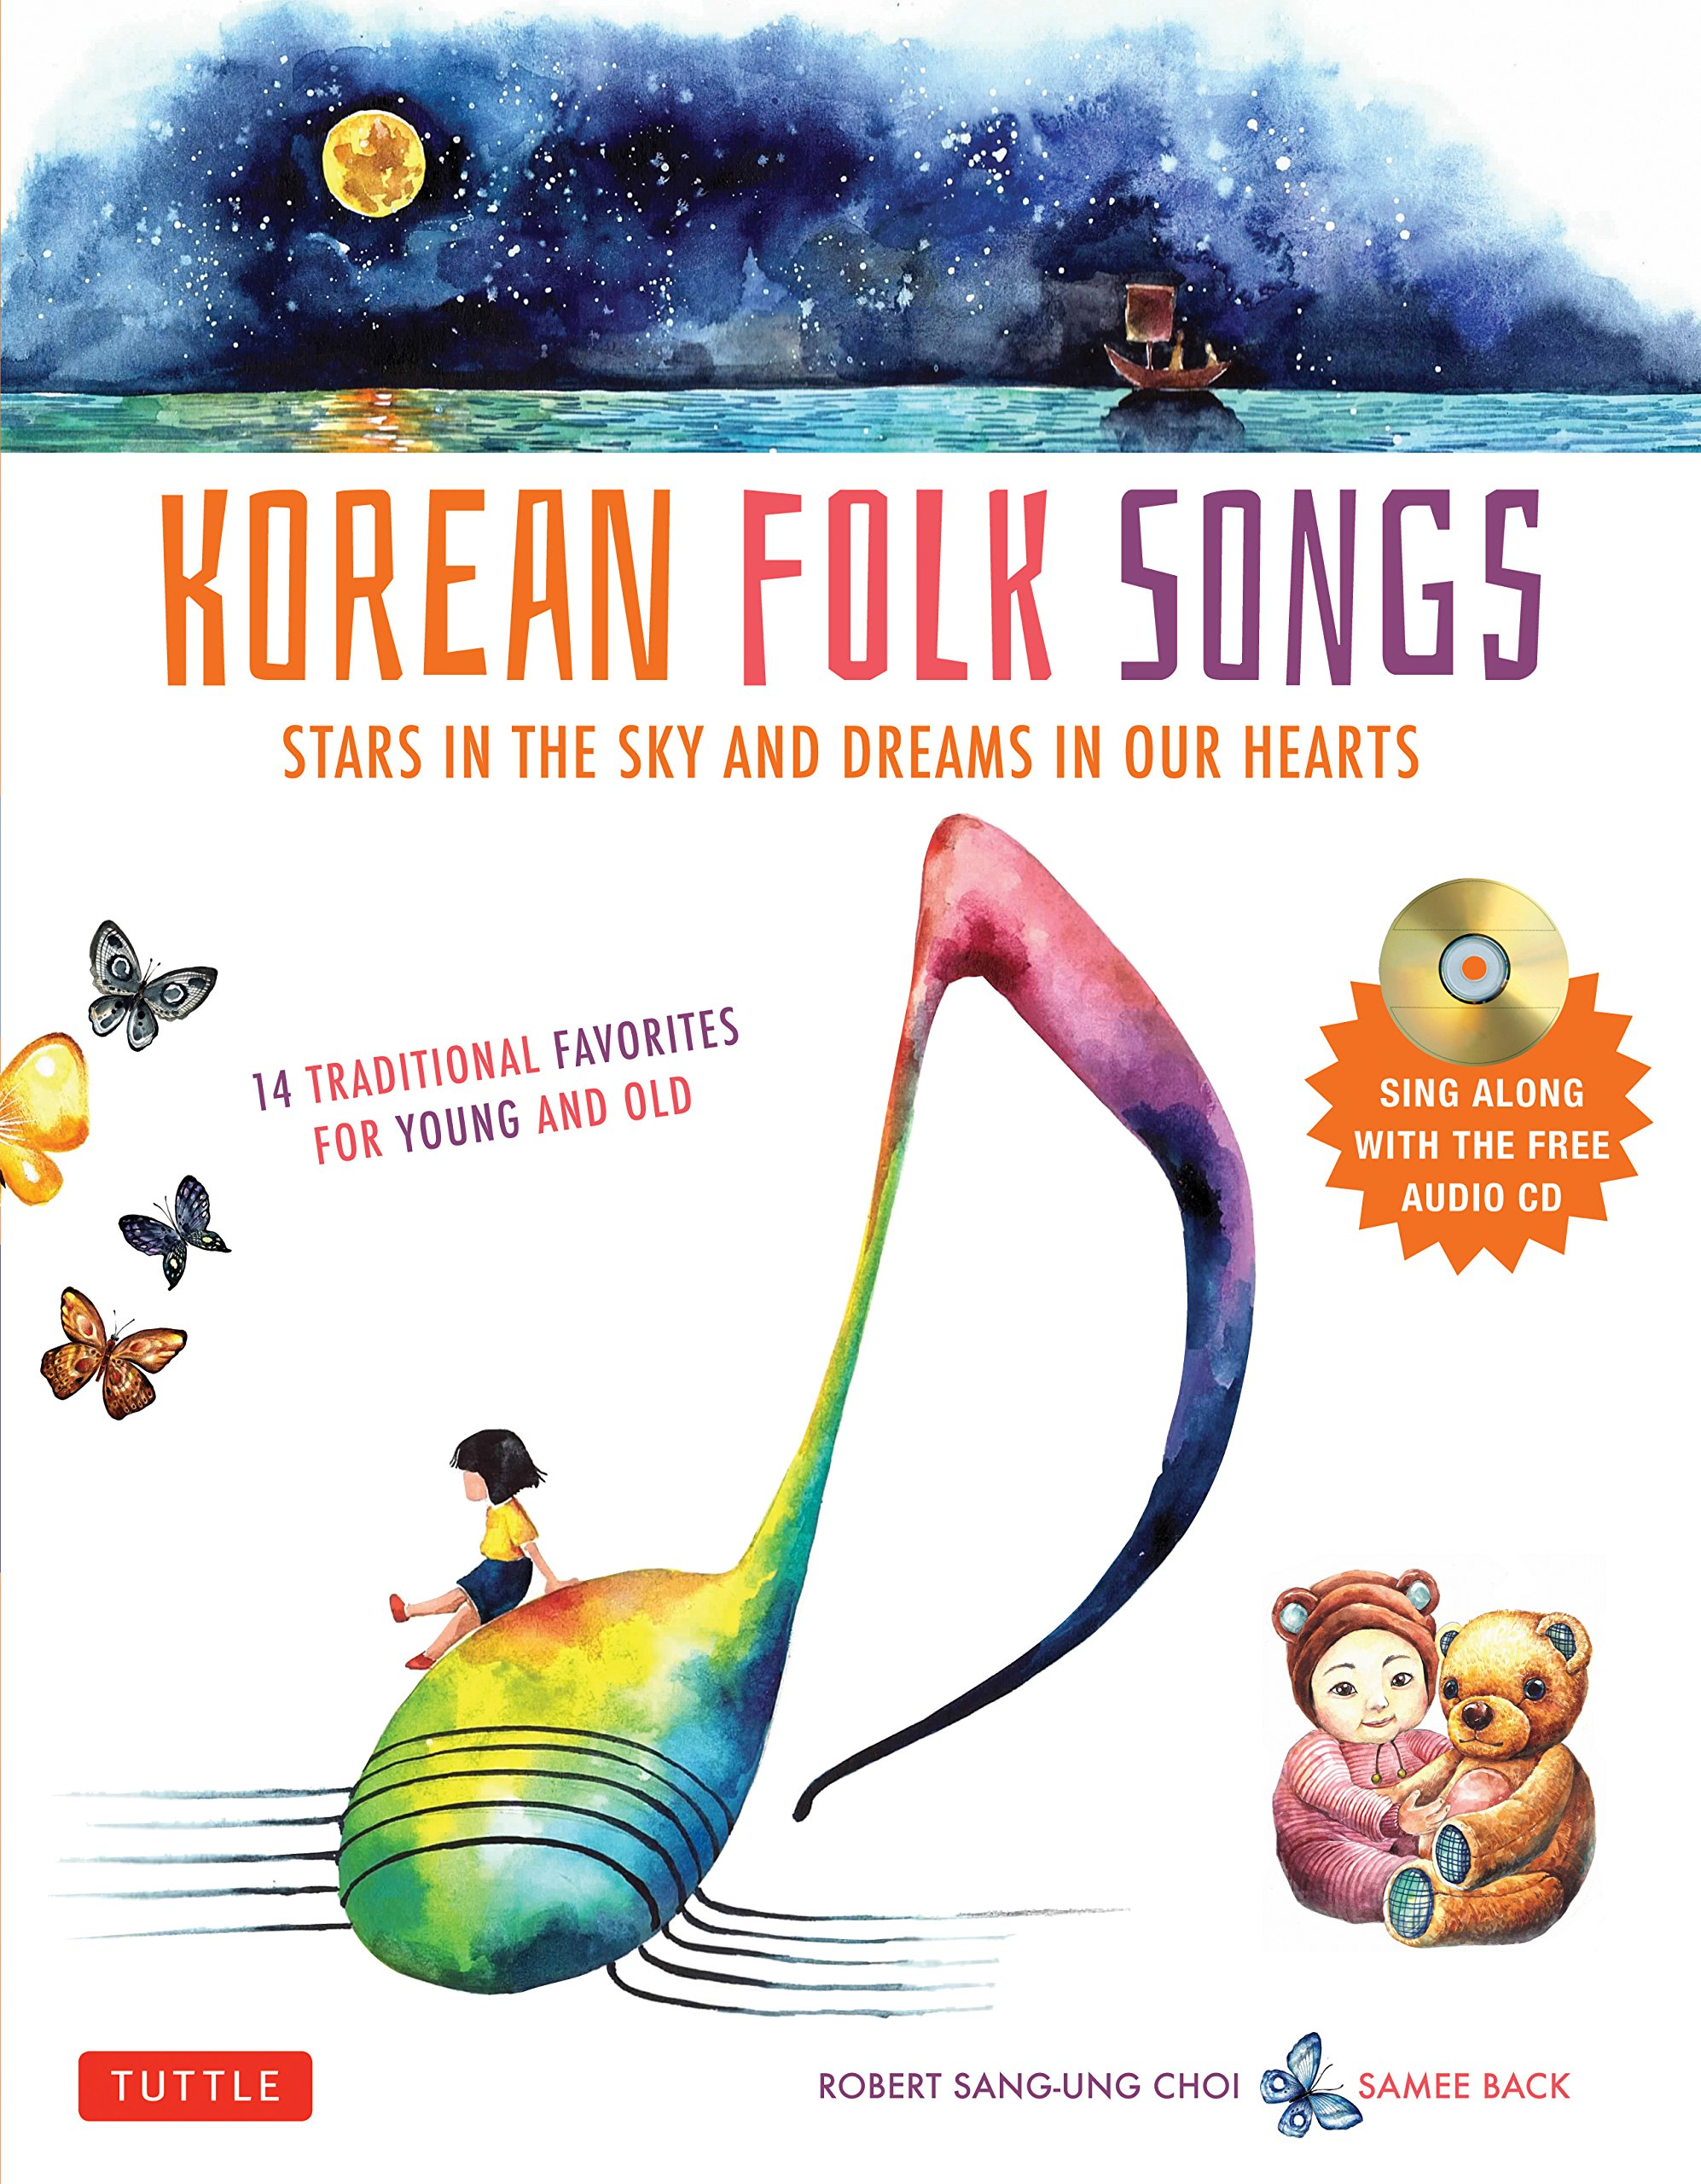 [Contest] Korean Folk Songs: Stars in the Sky and Dreams in Our Hearts